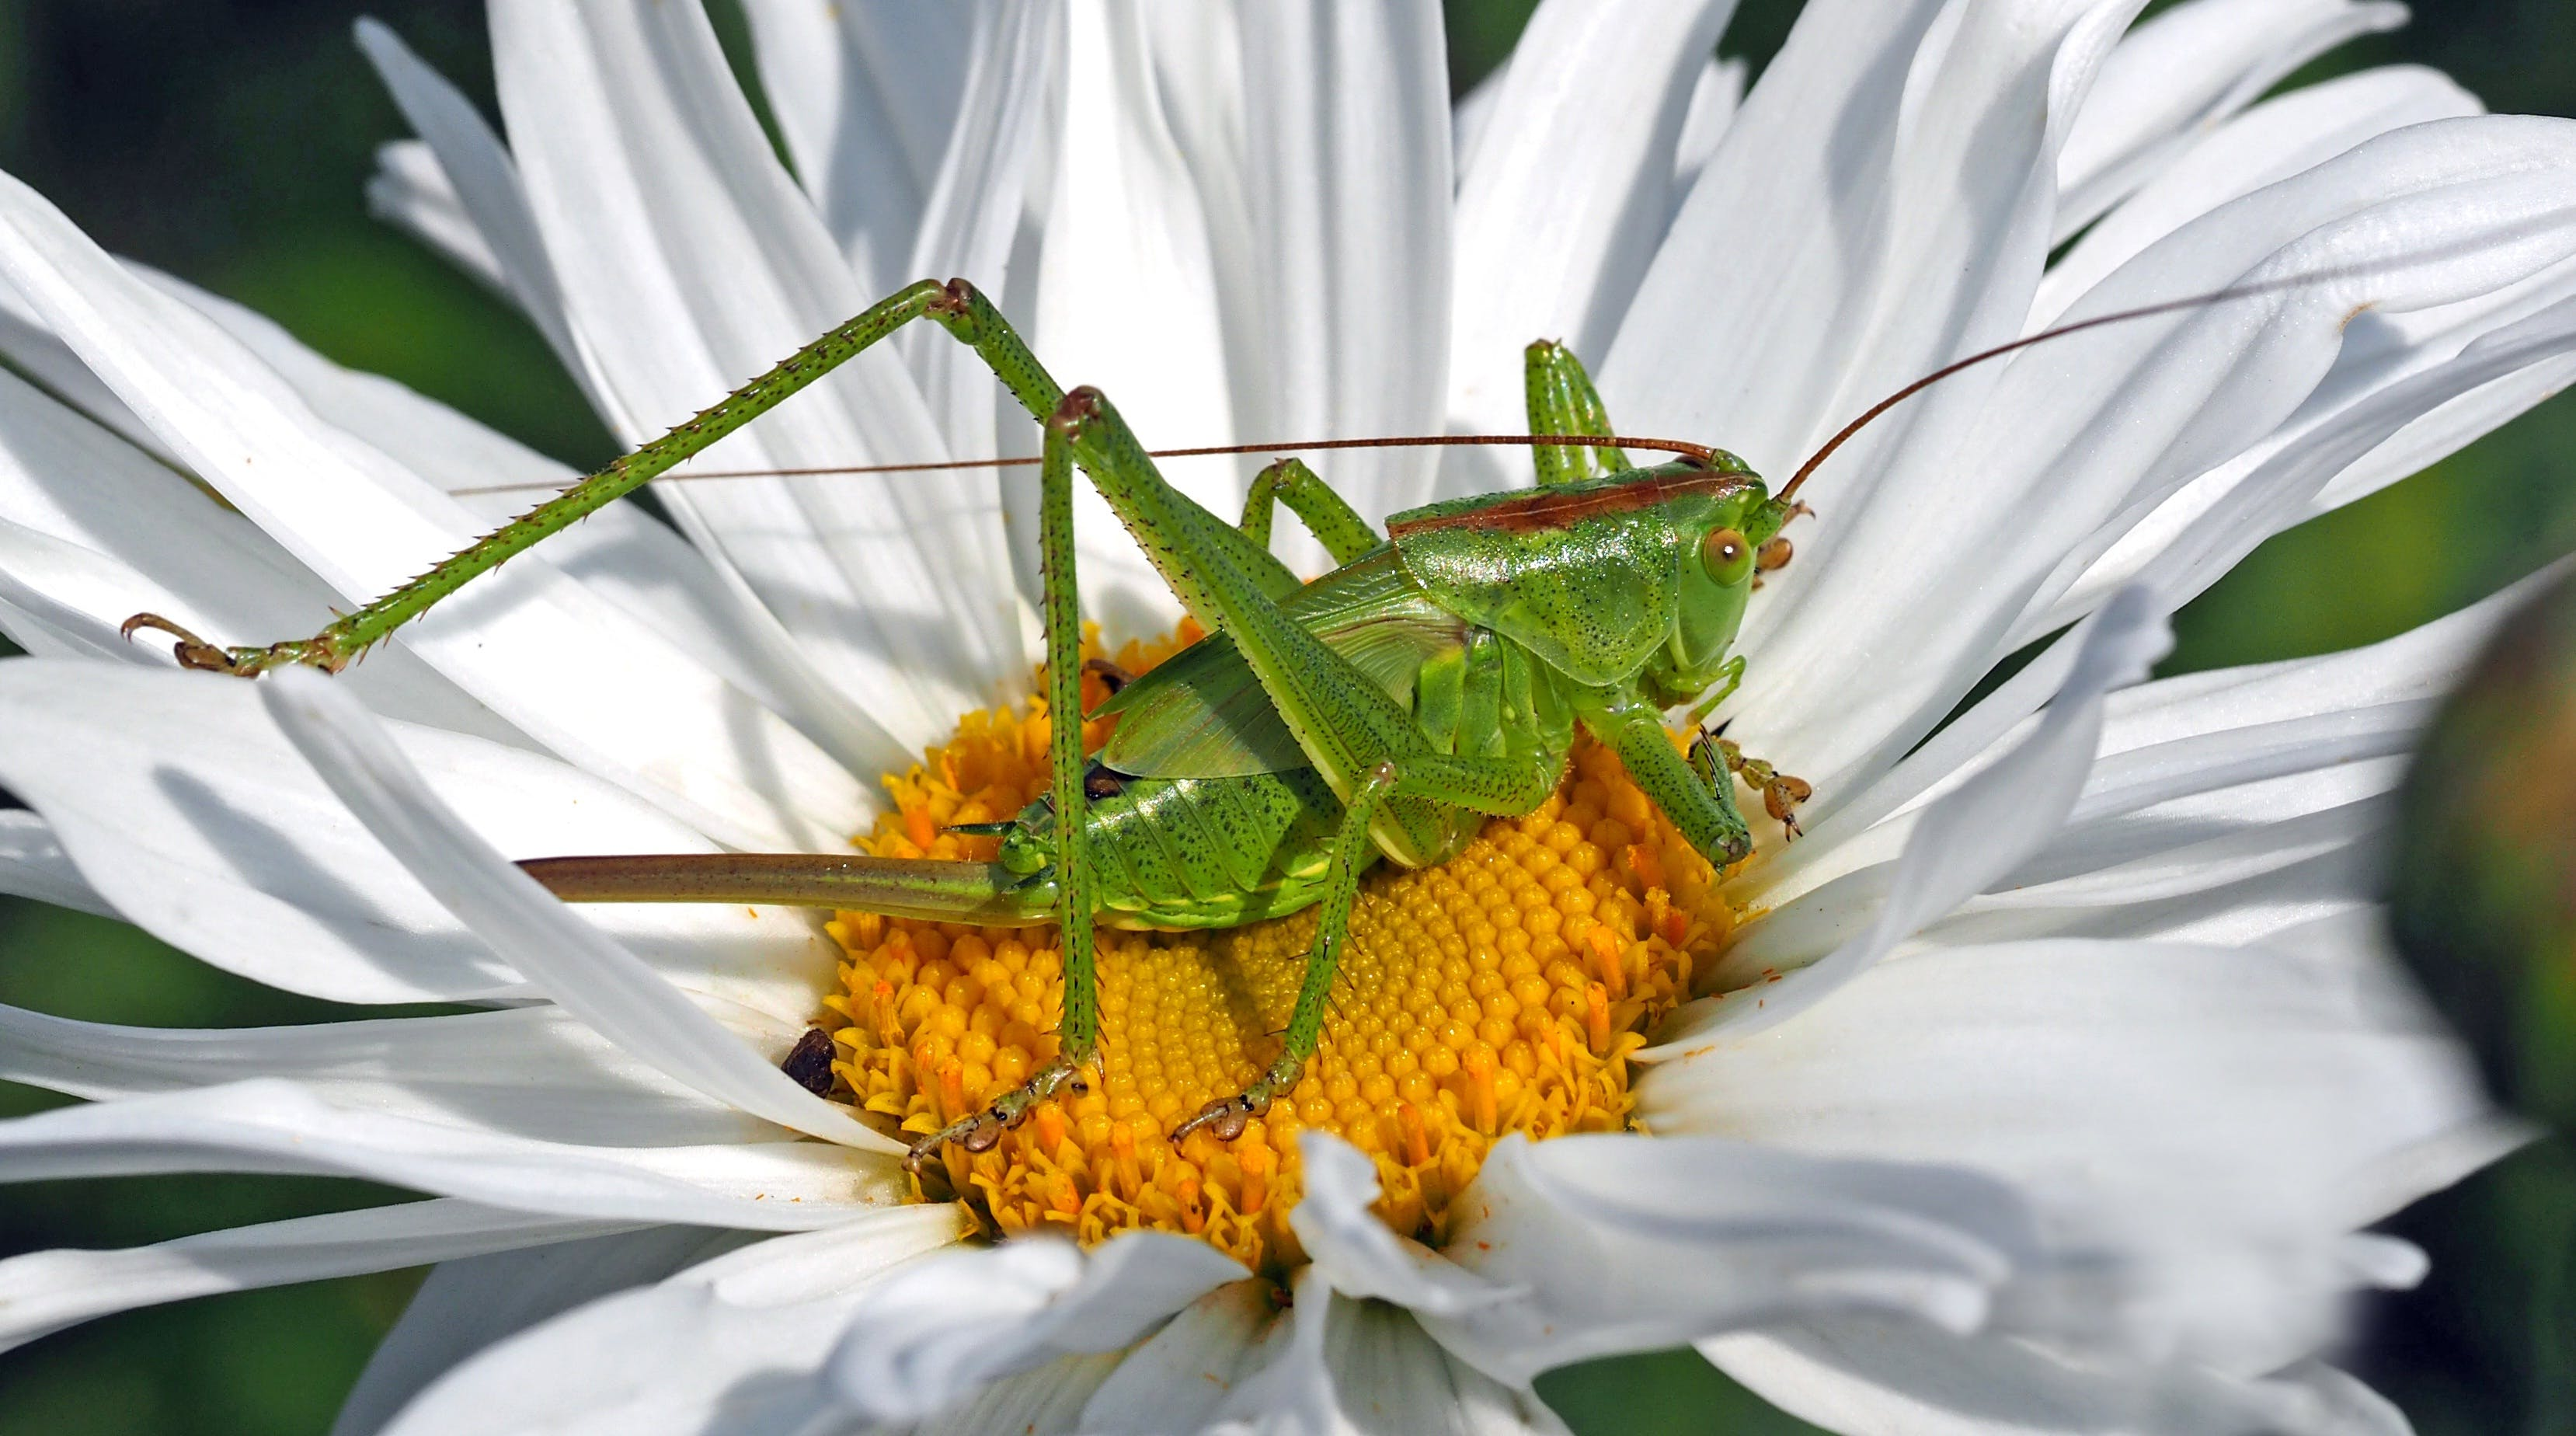 Green 8 Legged Insect on White and Yellow Multi Petaled Flower during Daytime